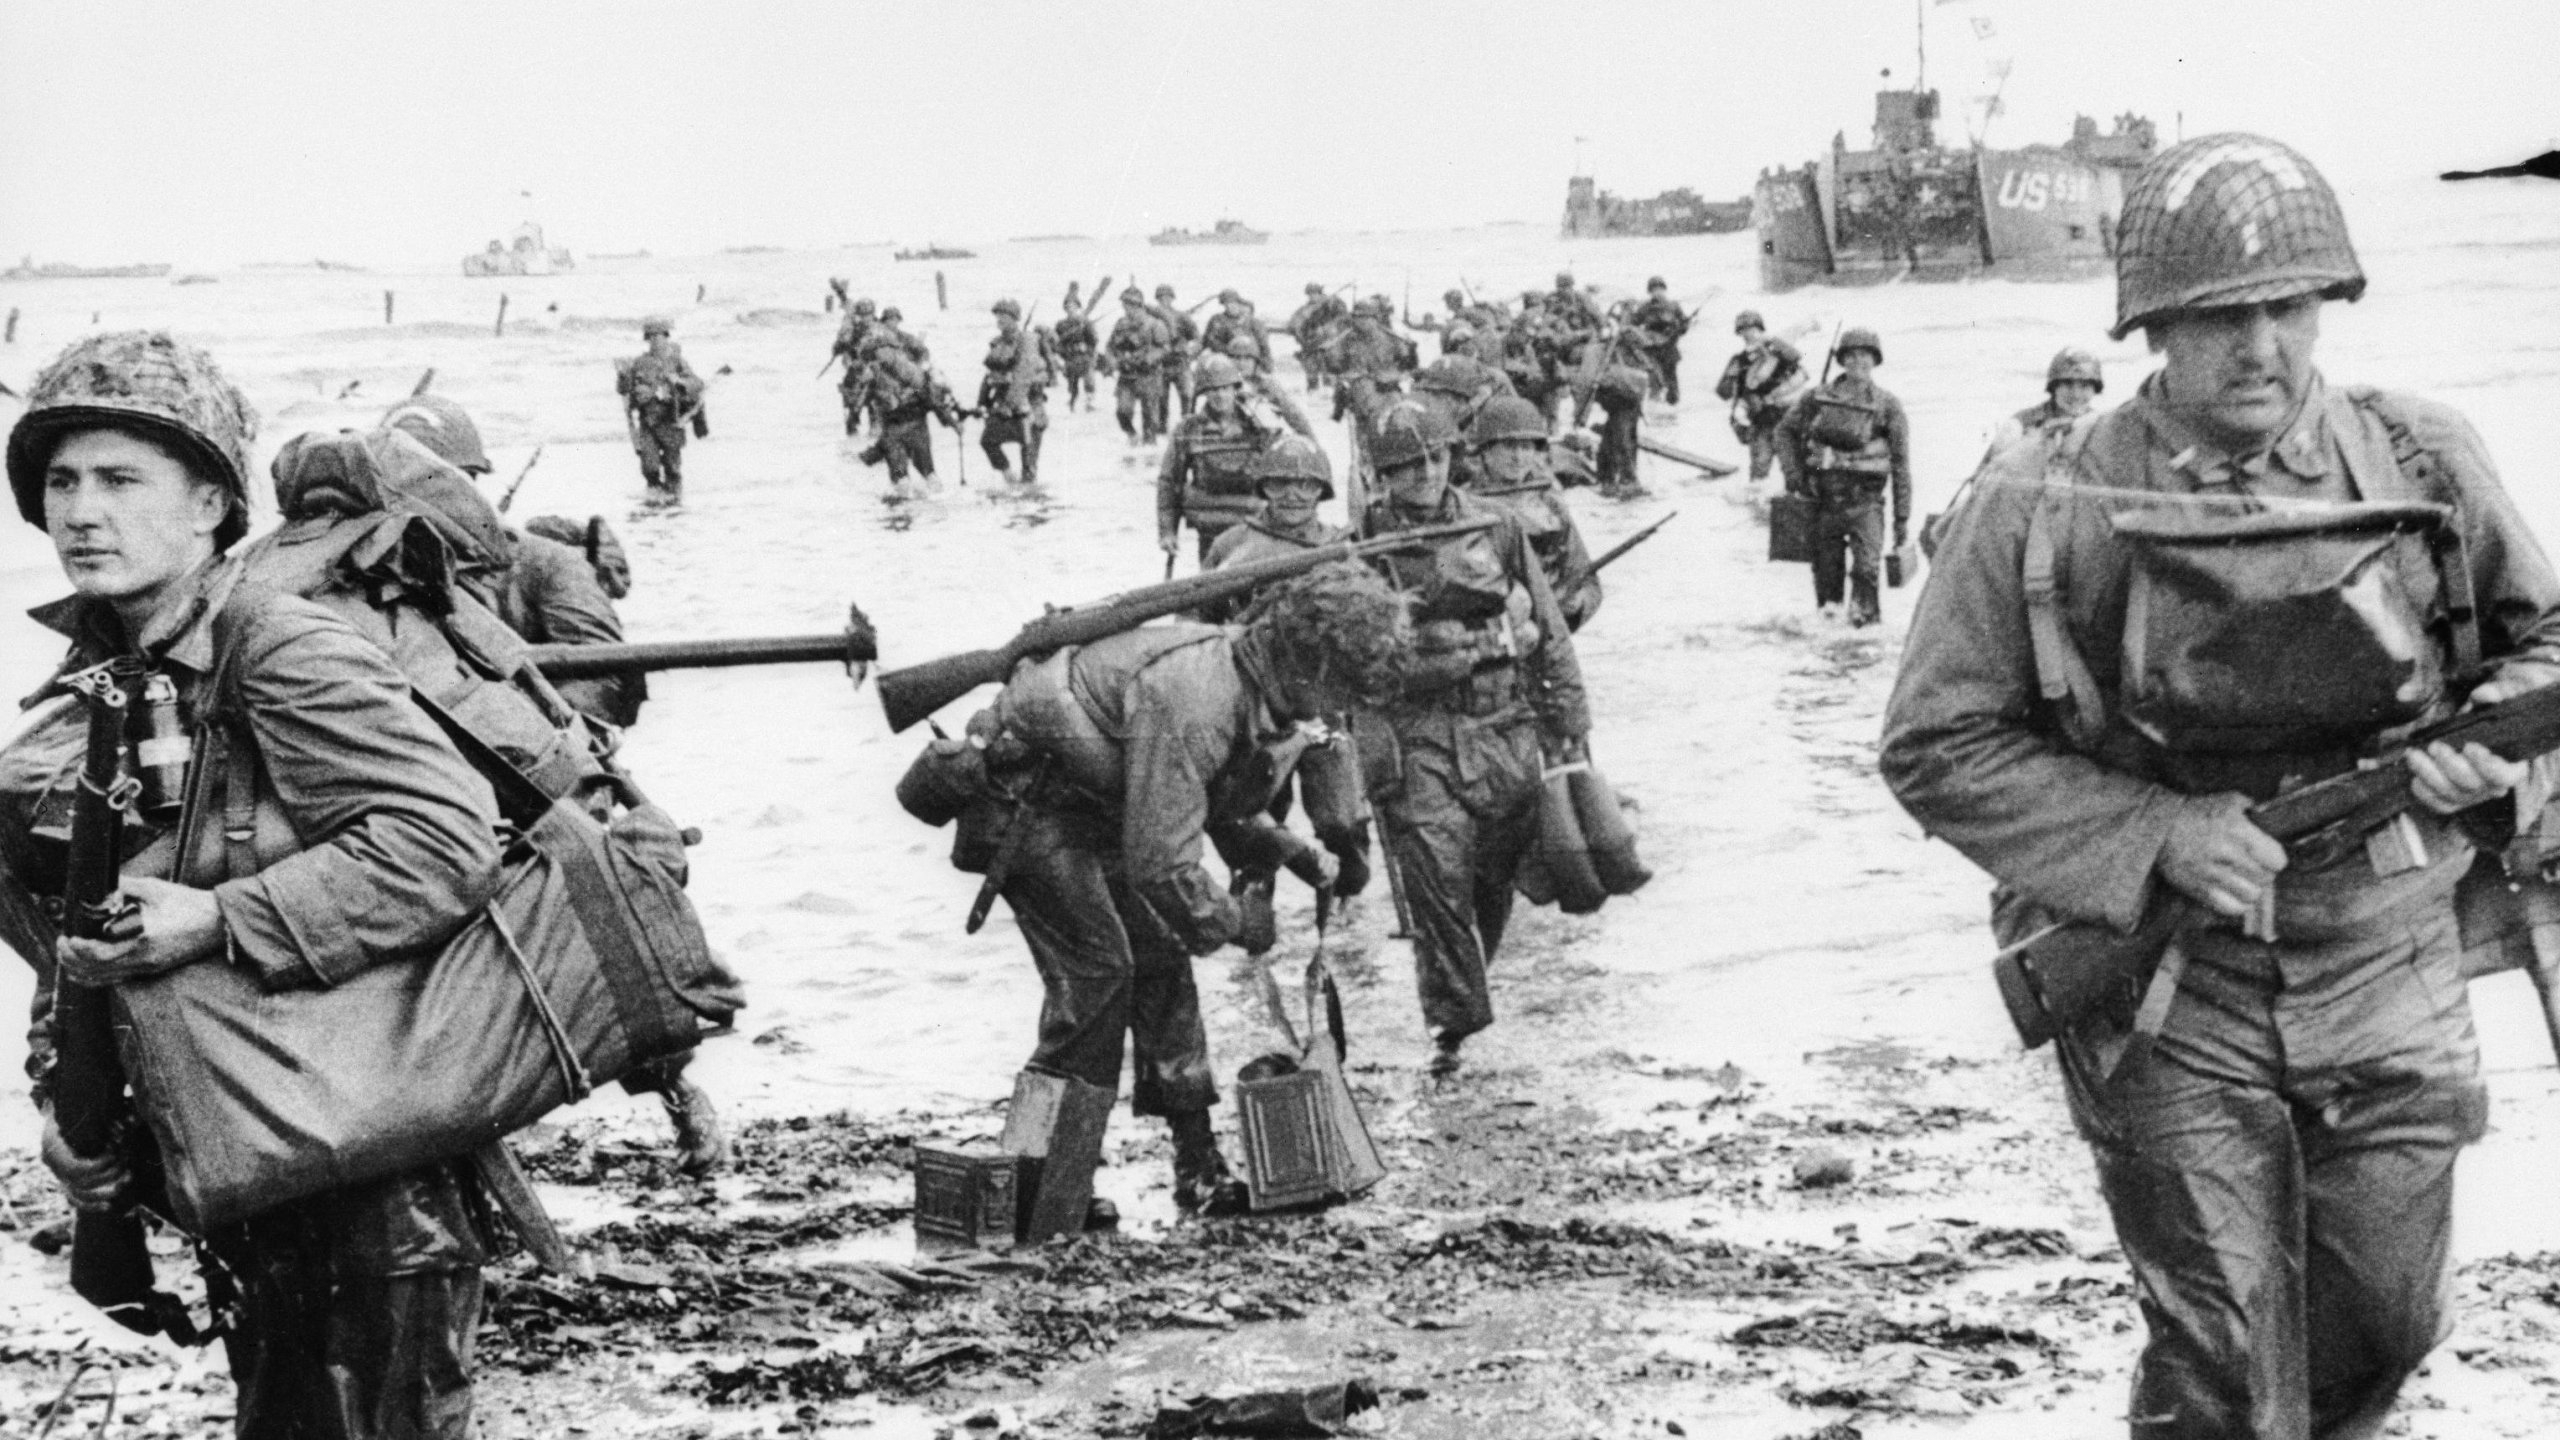 US troops landing on Omaha beach during the Normandy landings. (Credit: Keystone/Hulton Archive/Getty)